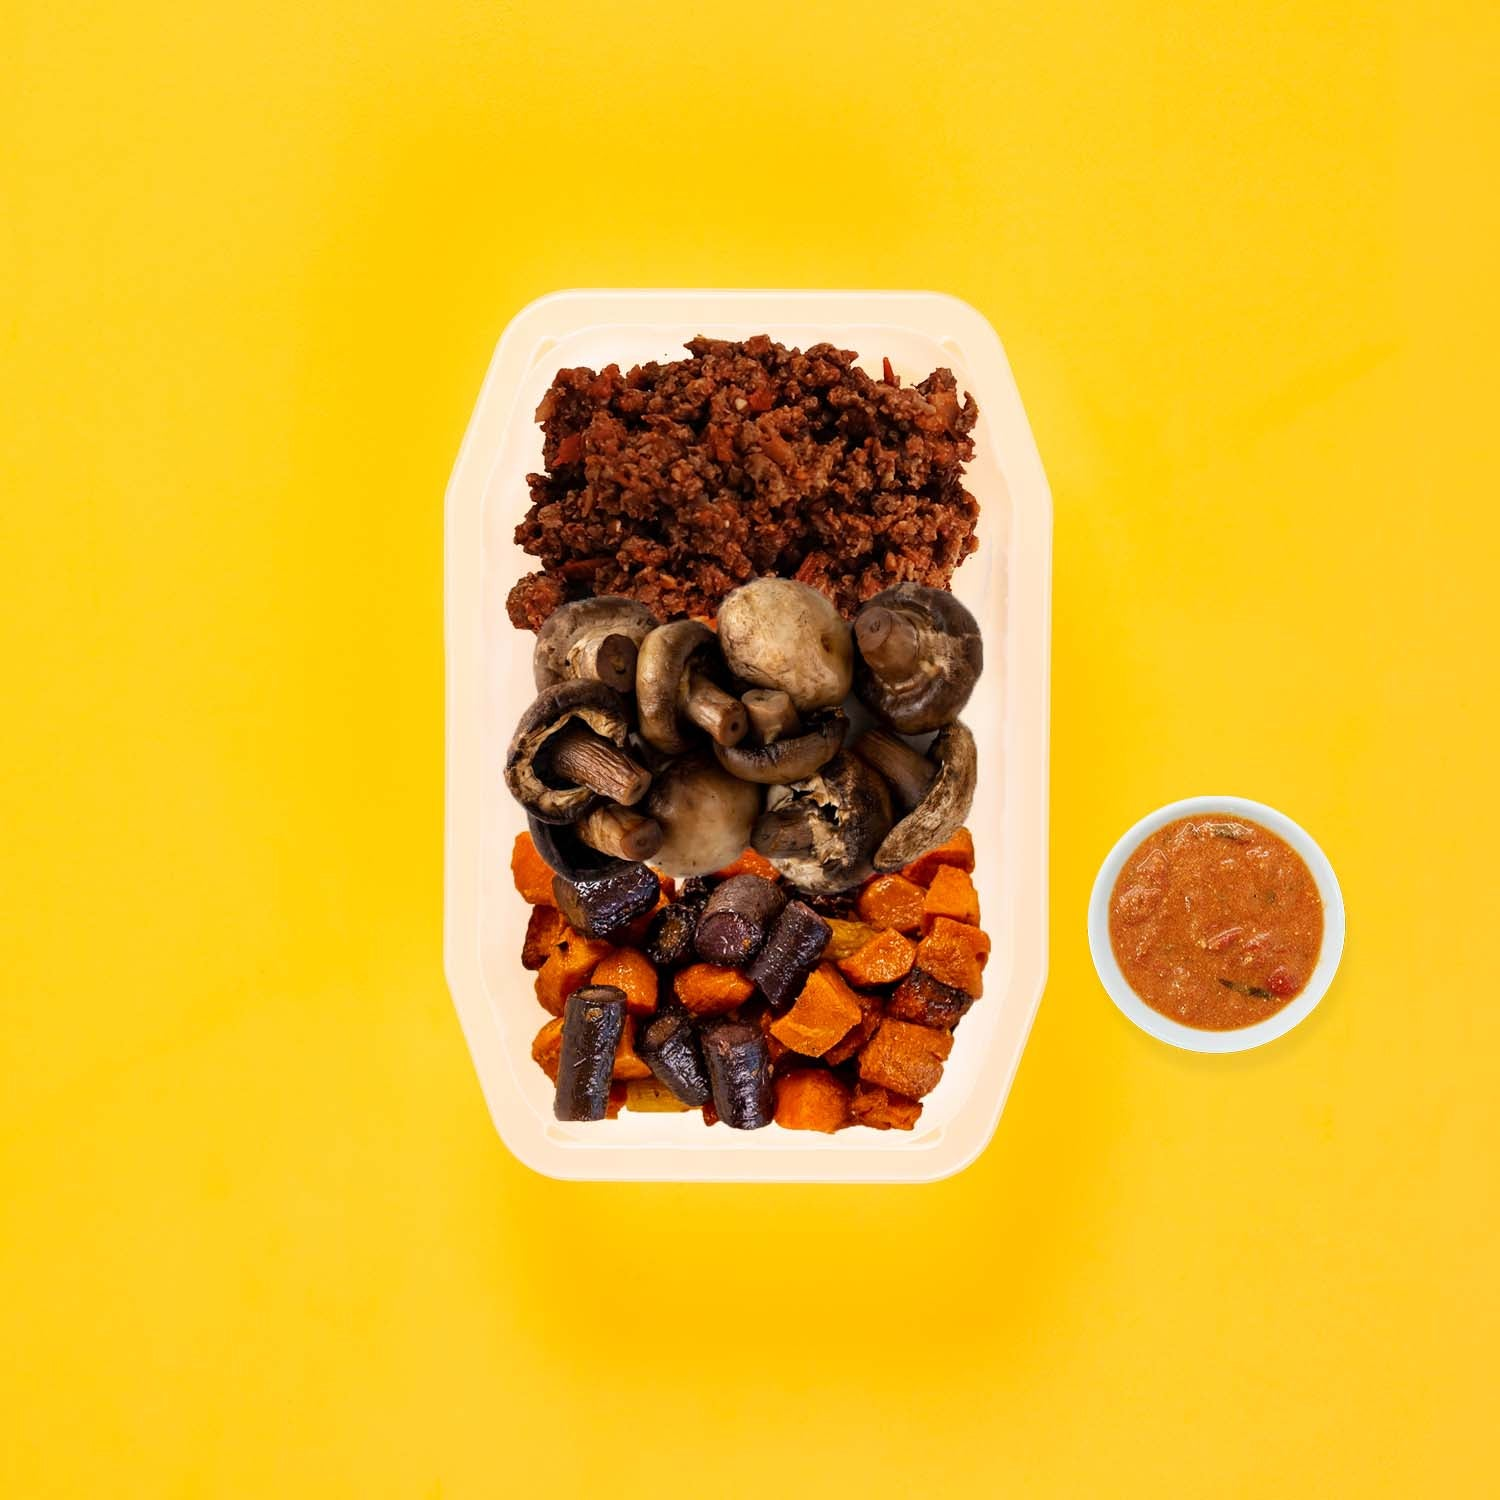 50g Lamb Moussaka 100g Mushrooms 100g Tri Baked Carrots Thai Red Curry